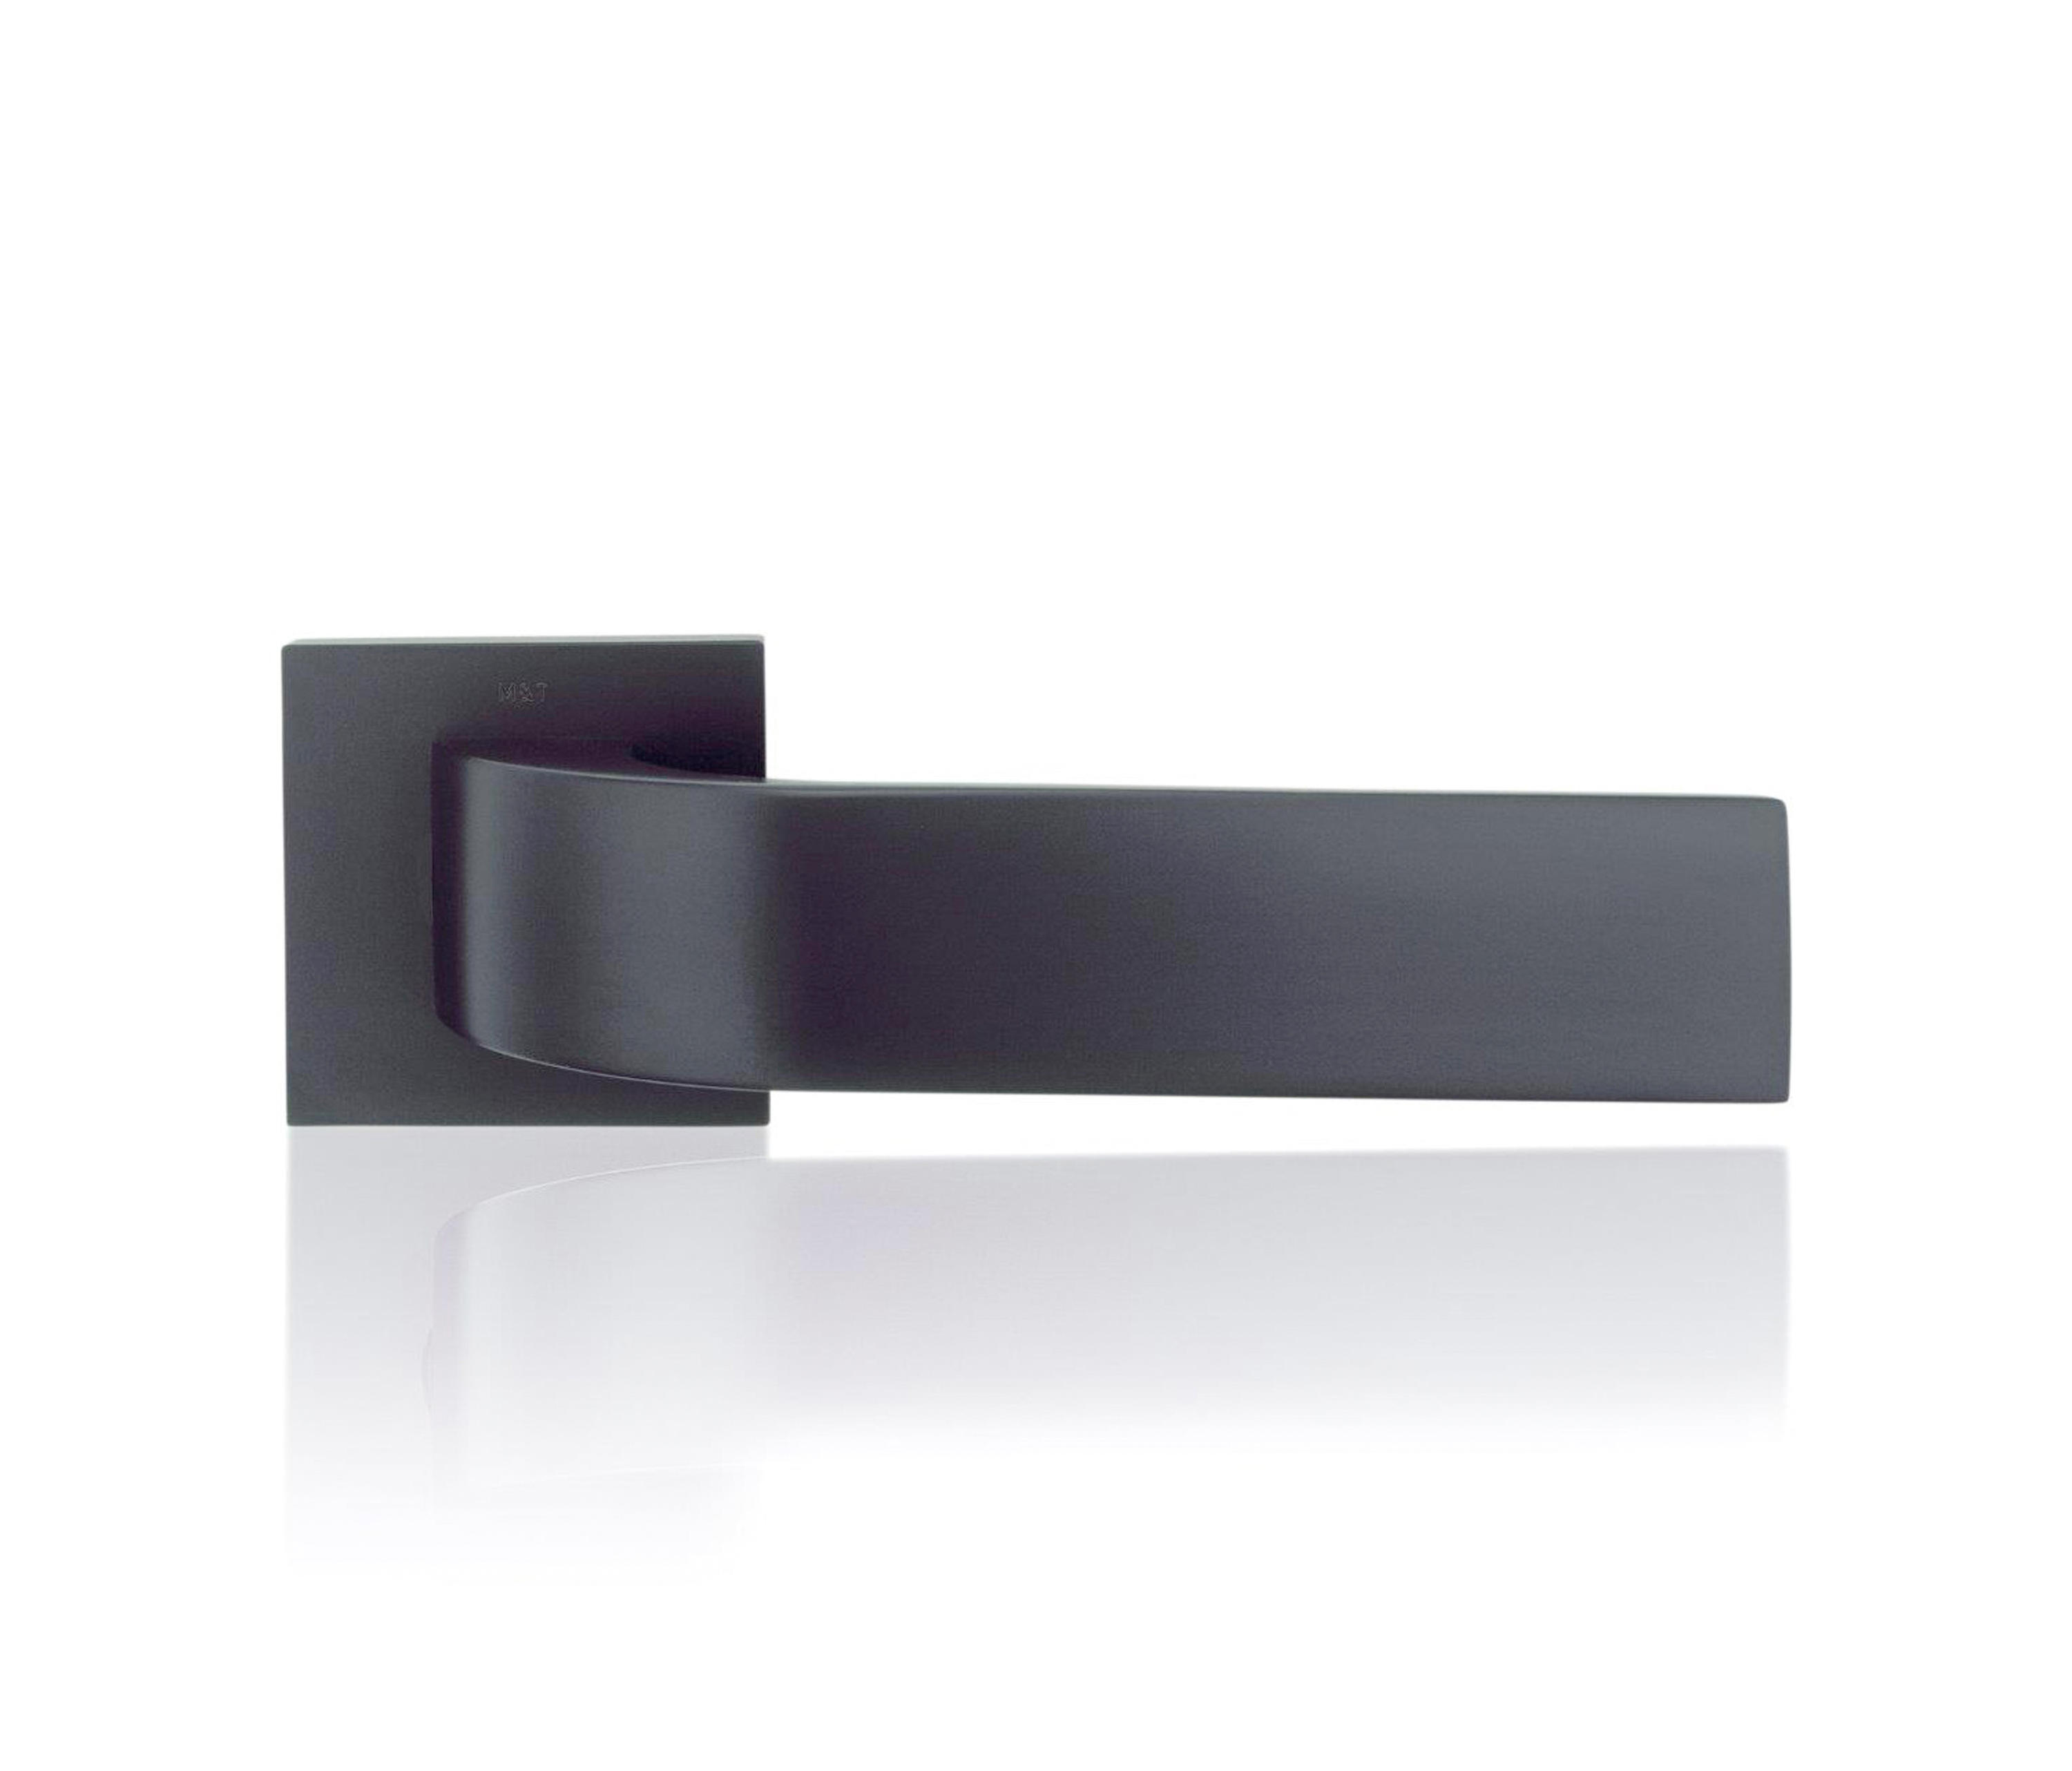 Trinity Door Handle by Mu0026T Manufacture | Lever handles  sc 1 st  Architonic & TRINITY DOOR HANDLE - Lever handles from Mu0026T Manufacture | Architonic